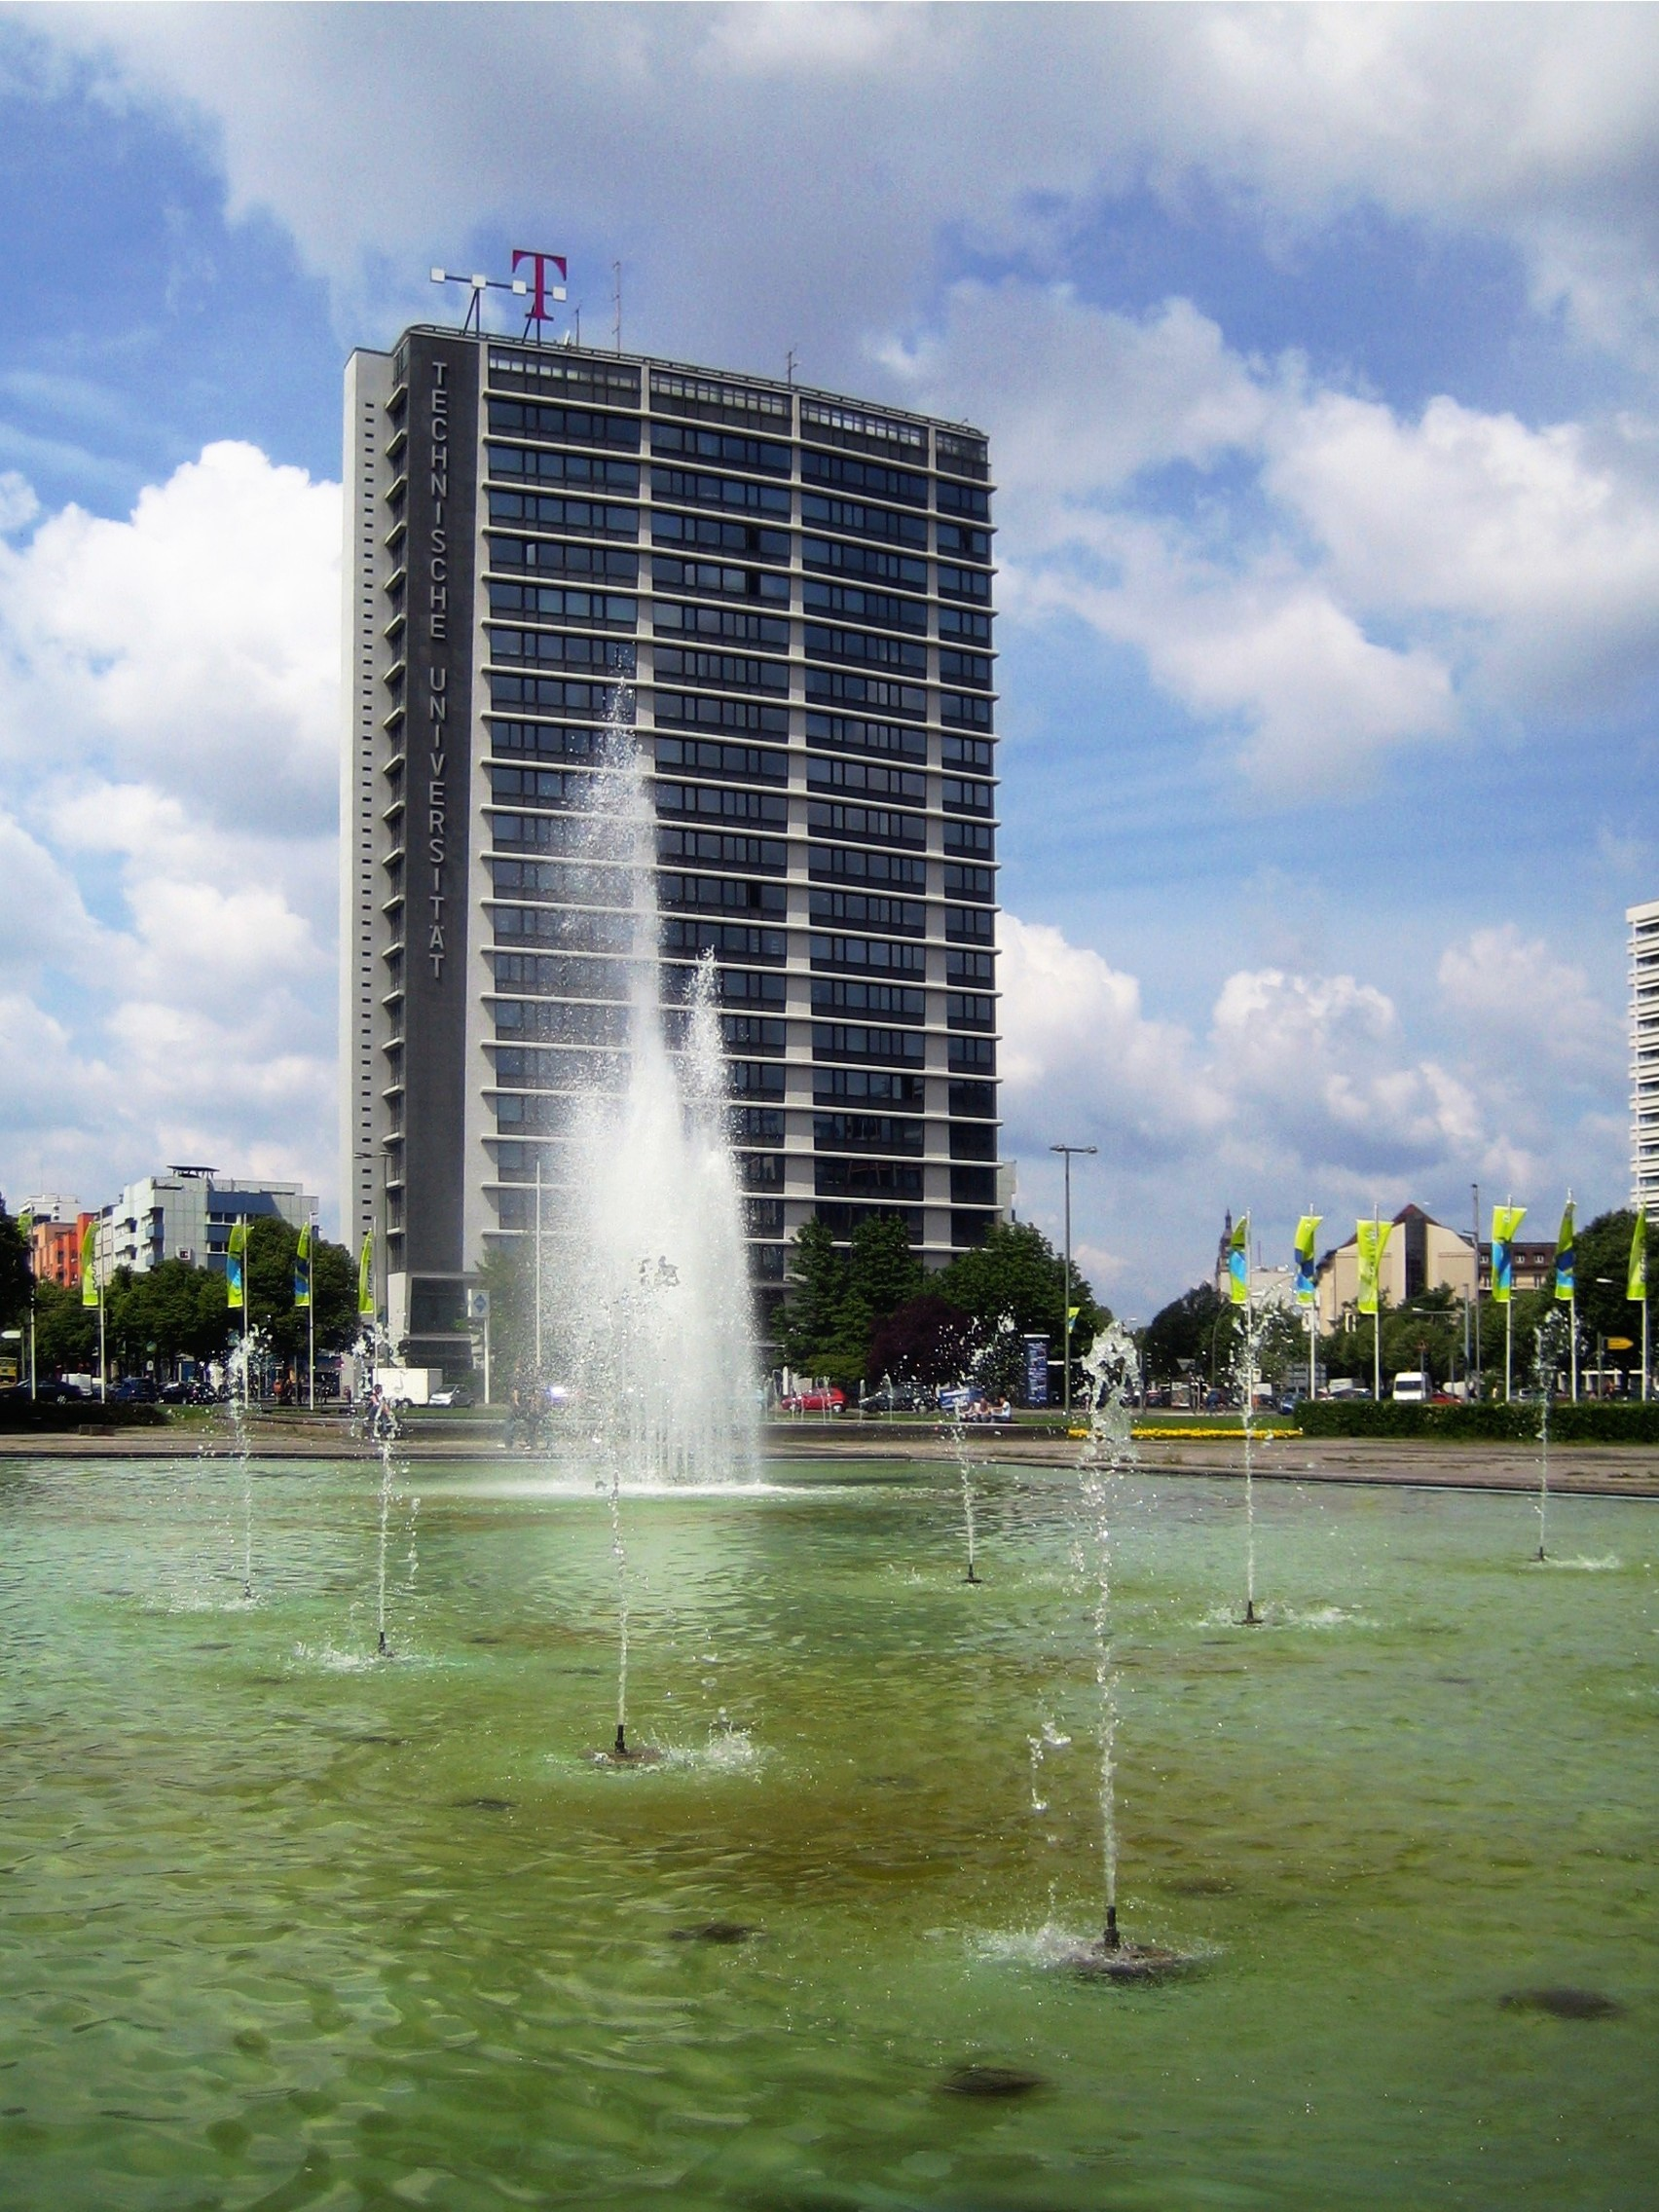 https://upload.wikimedia.org/wikipedia/commons/b/be/Brunnen_Berlin-Charlottenburg%2C_Ernst-Reuter-Platz%2C_2.jpg